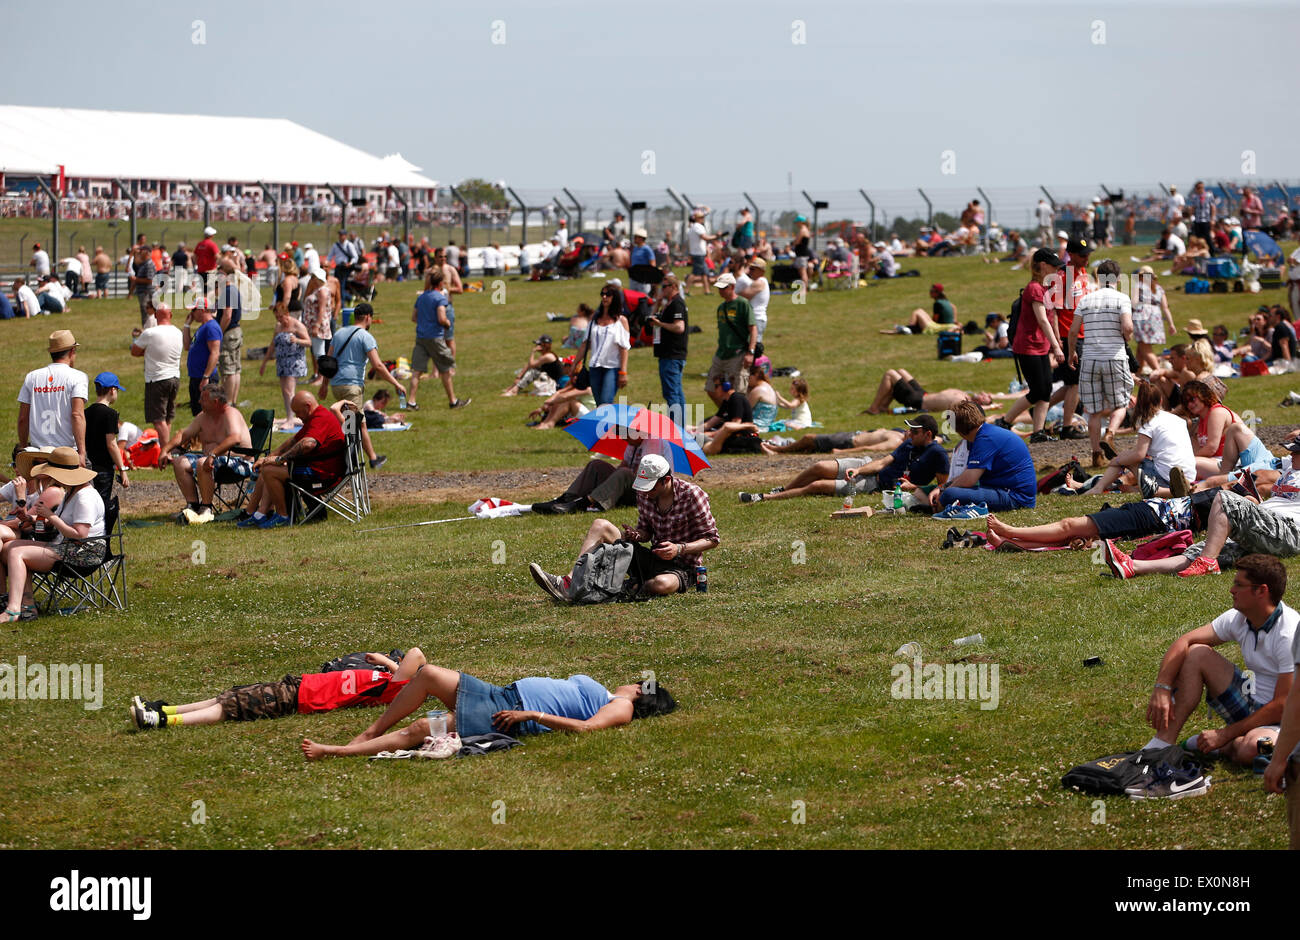 Silverstone Crowd Stock Photos & Silverstone Crowd Stock Images - Alamy